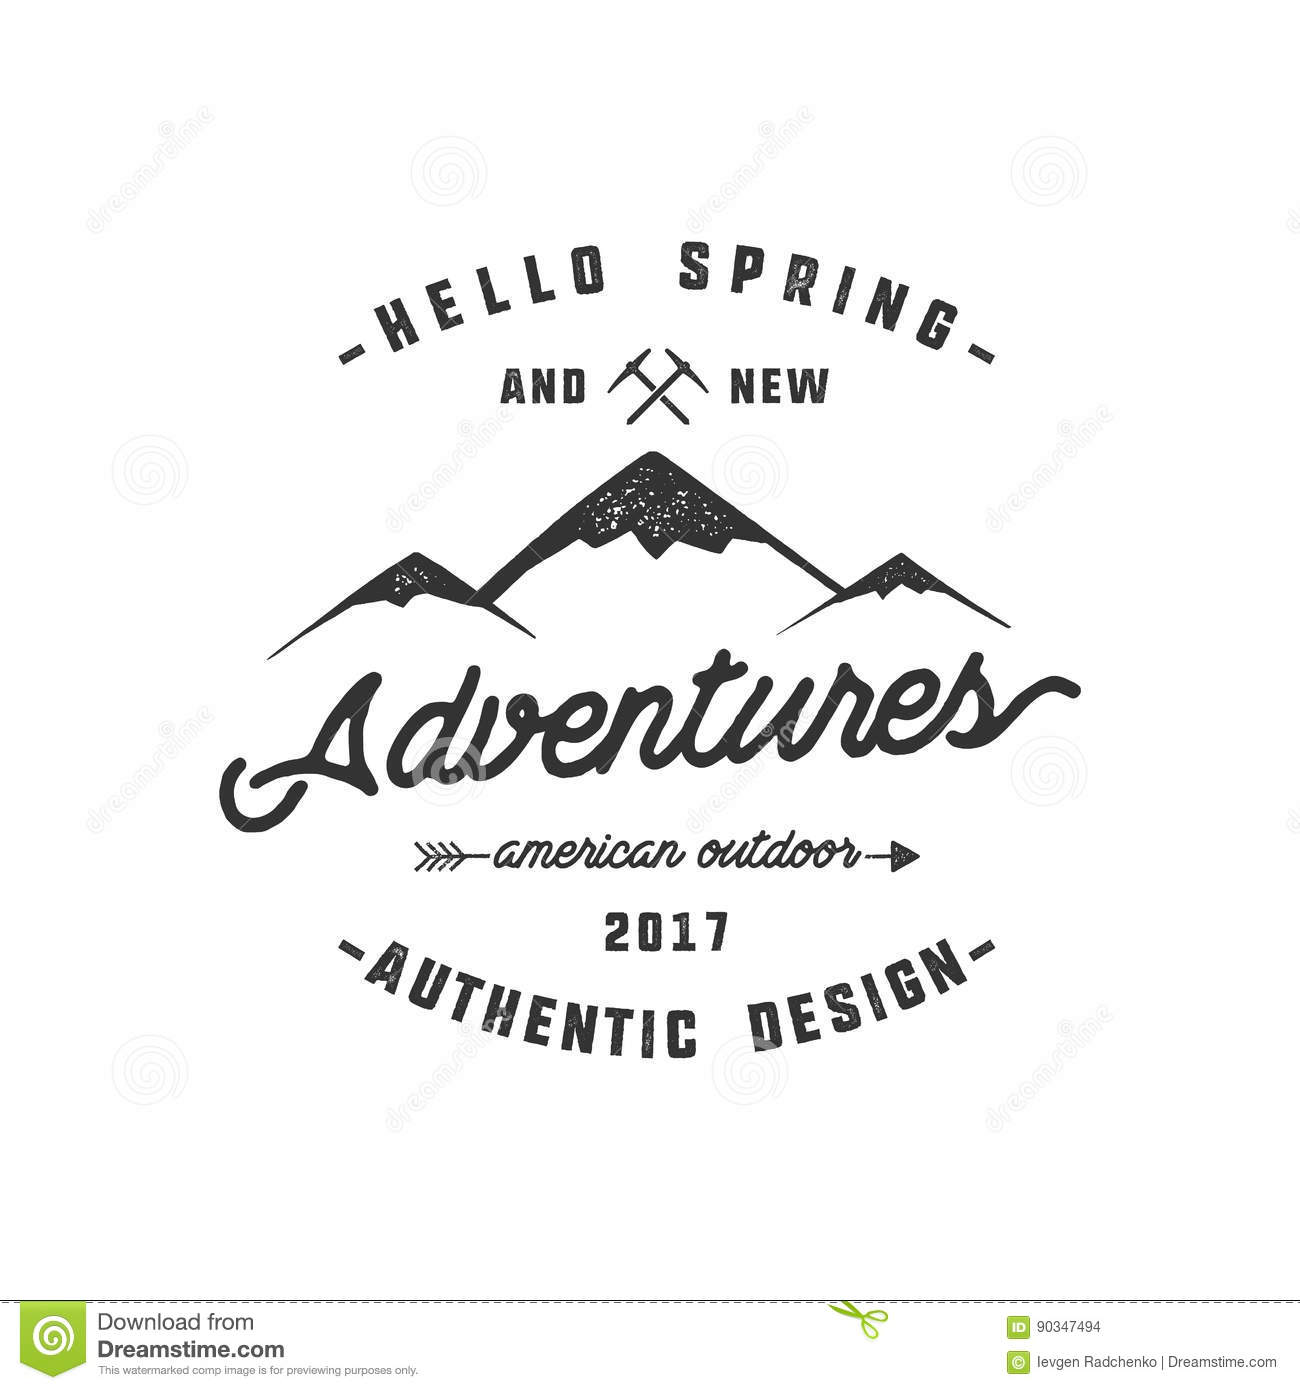 Vintage adventure Hand drawn label design. Hello spring and new adventures sign and outdoor activity symbols - mountains